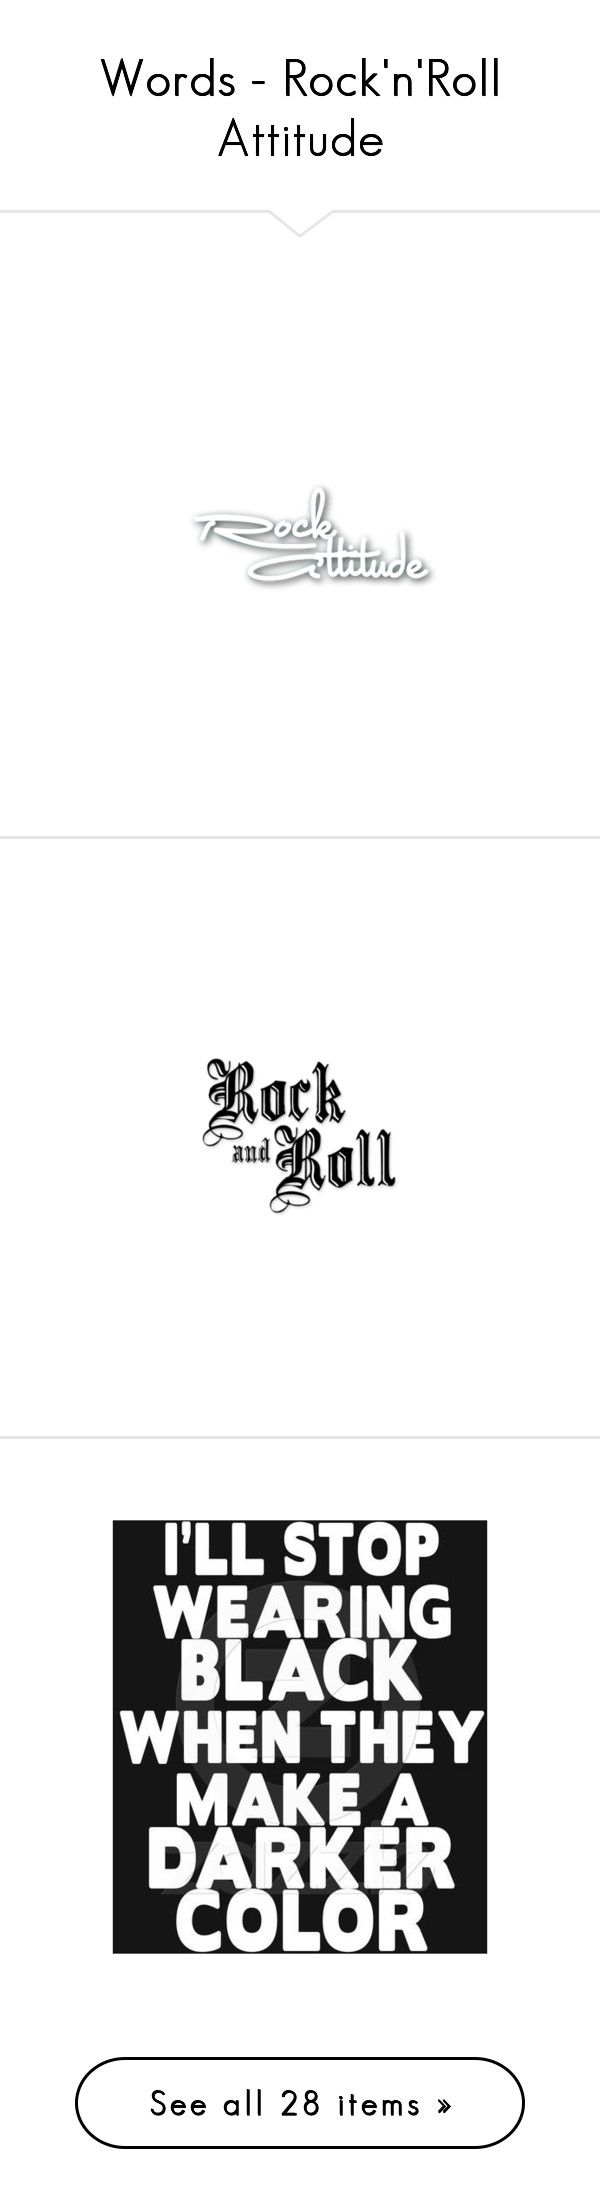 Rock and roll forever quotes quotesgram -  Words Rock N Roll Attitude By Annette Heathen Liked